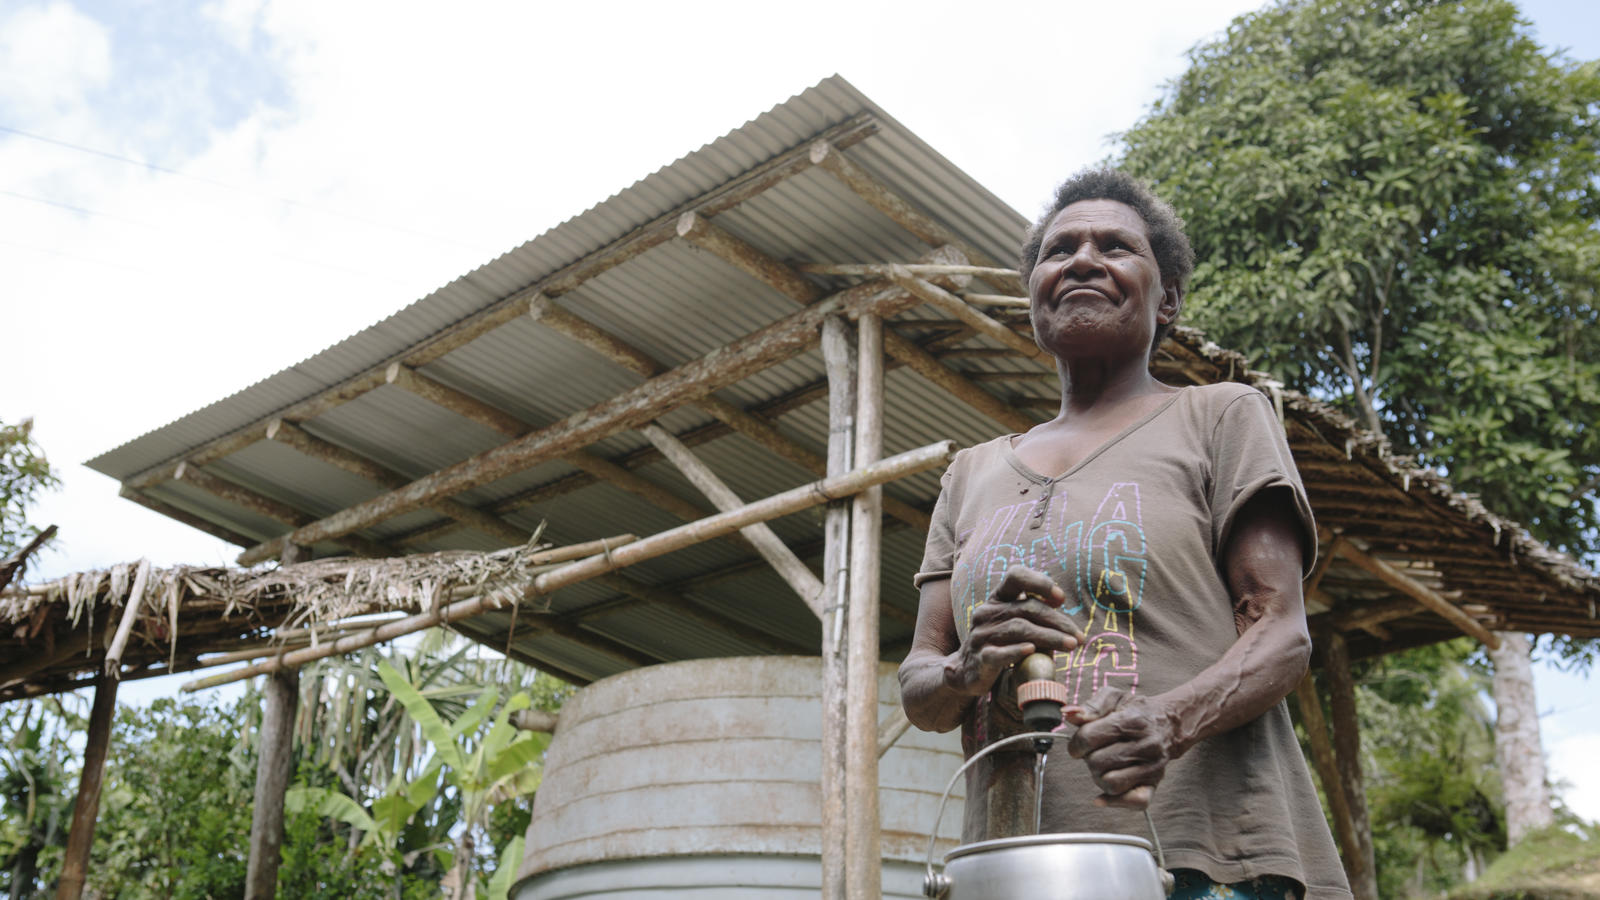 Anastasia Fingu, 64, collecting clean water from her water tank, Anastasia was the first person in the village to get a water tank through a council donation, it helps her feed her chickens, Simbrangu village, East Sepik province, Papua New Guinea, 2013